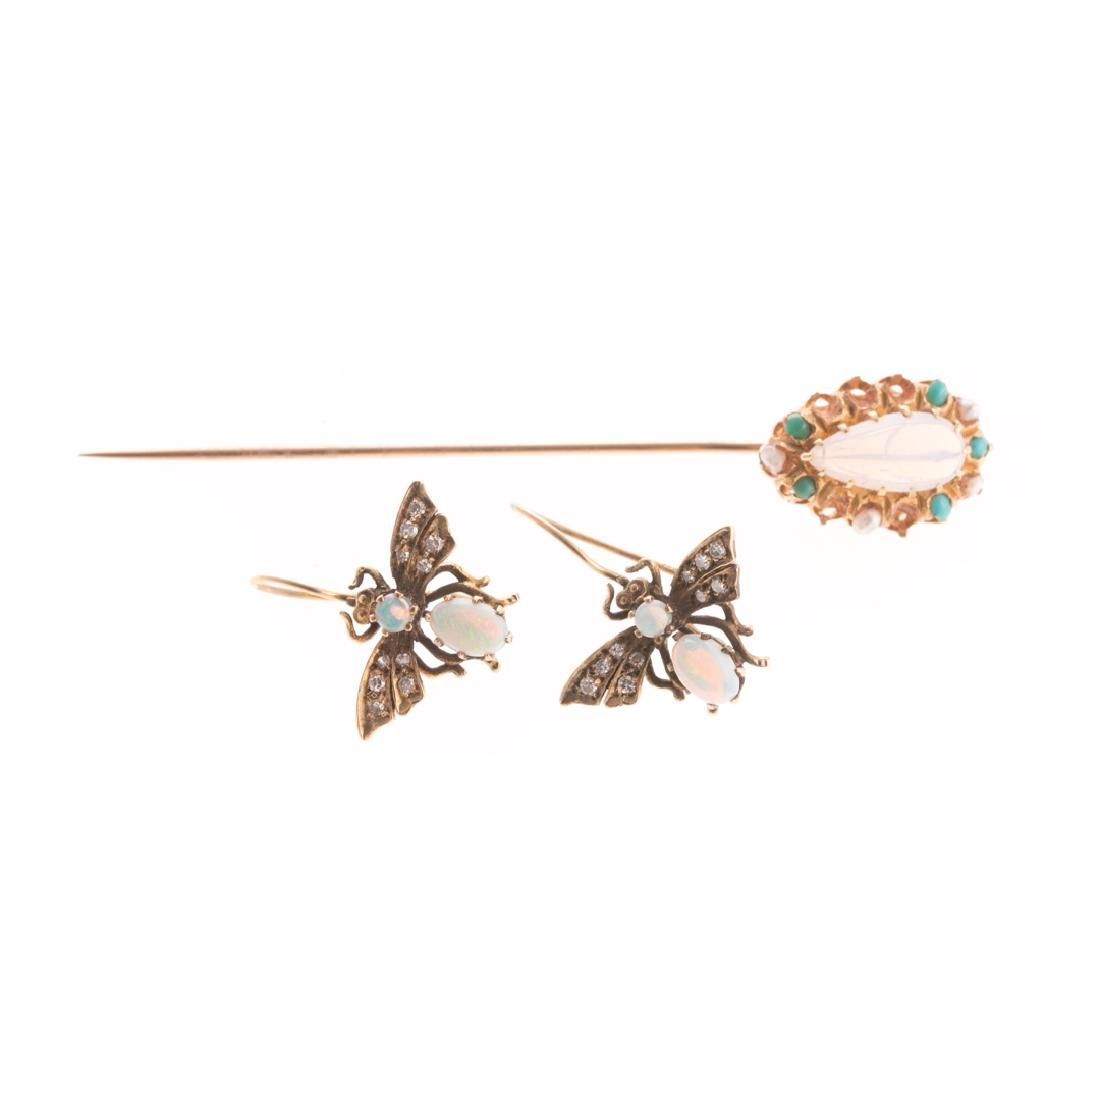 A Pair of Vintage Earrings & Stick Pin with Opals